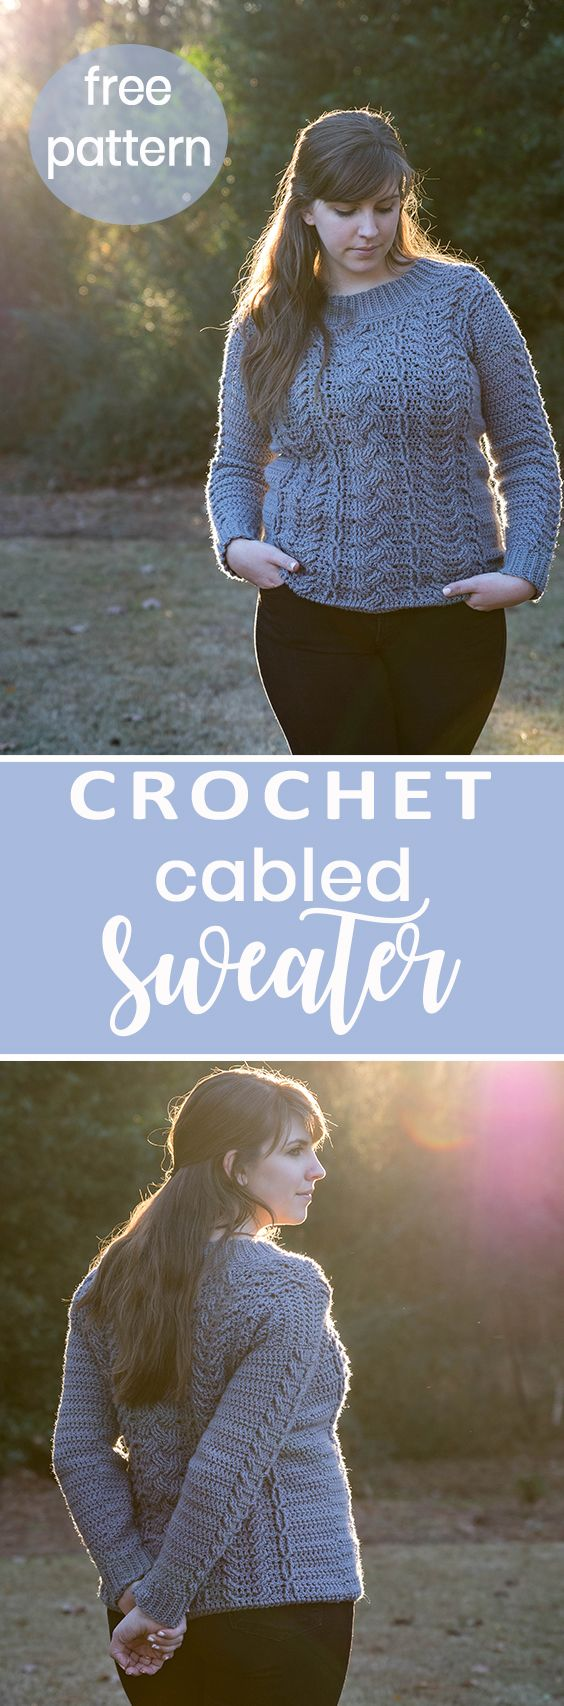 Crochet this detailed knit like cabled pullover sweater top with my free crochet pattern and video tutorial!